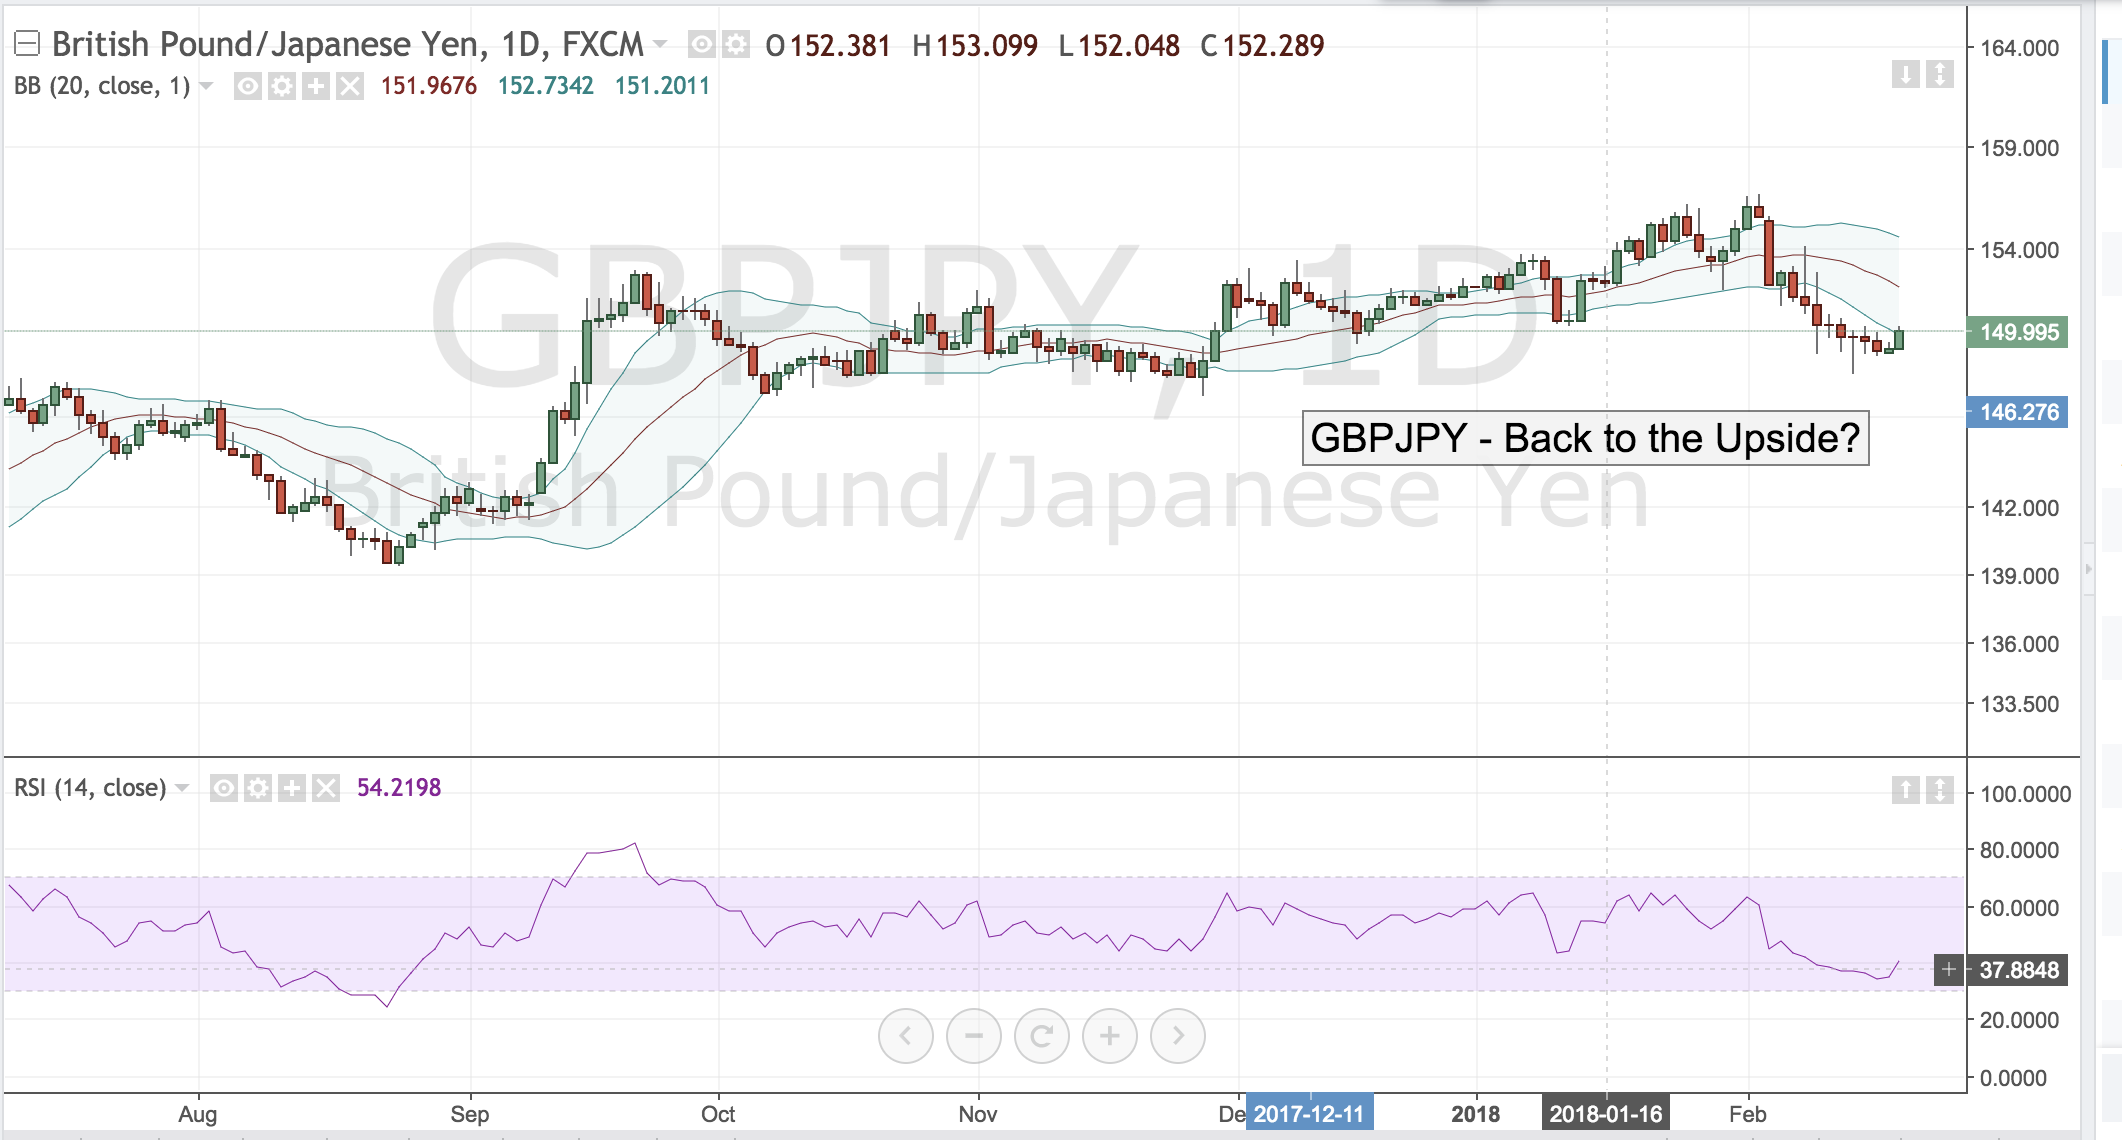 GBPJPY – Back to the Upside